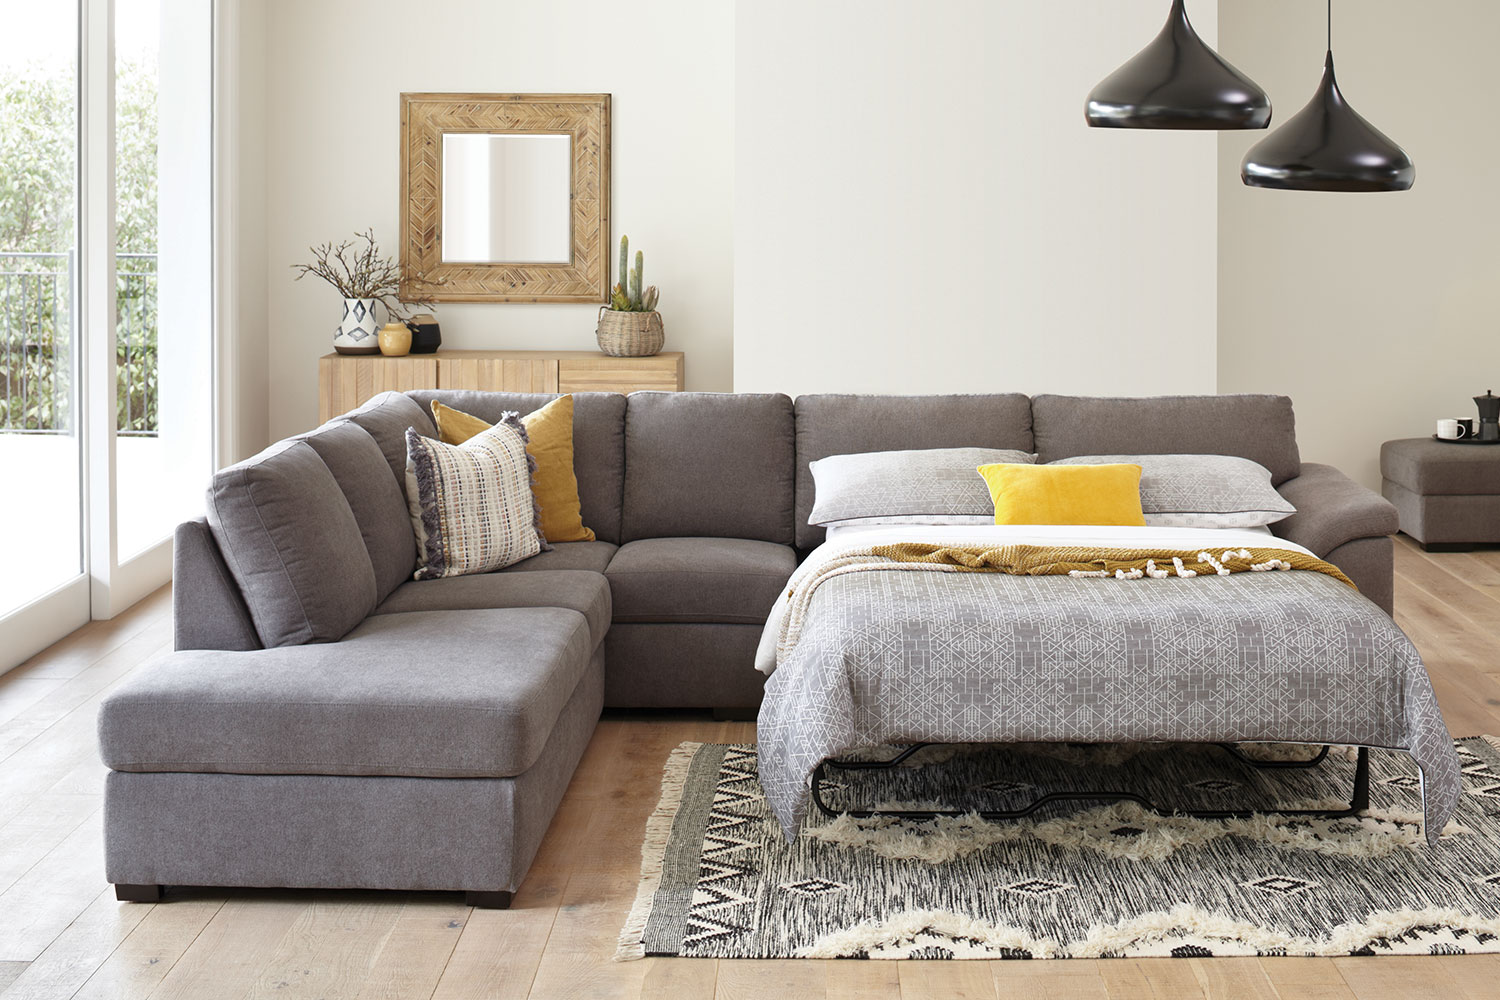 Nebula 5 Seater Fabric Corner Lounge Suite With Sofa Bed Harvey Norman New Zealand